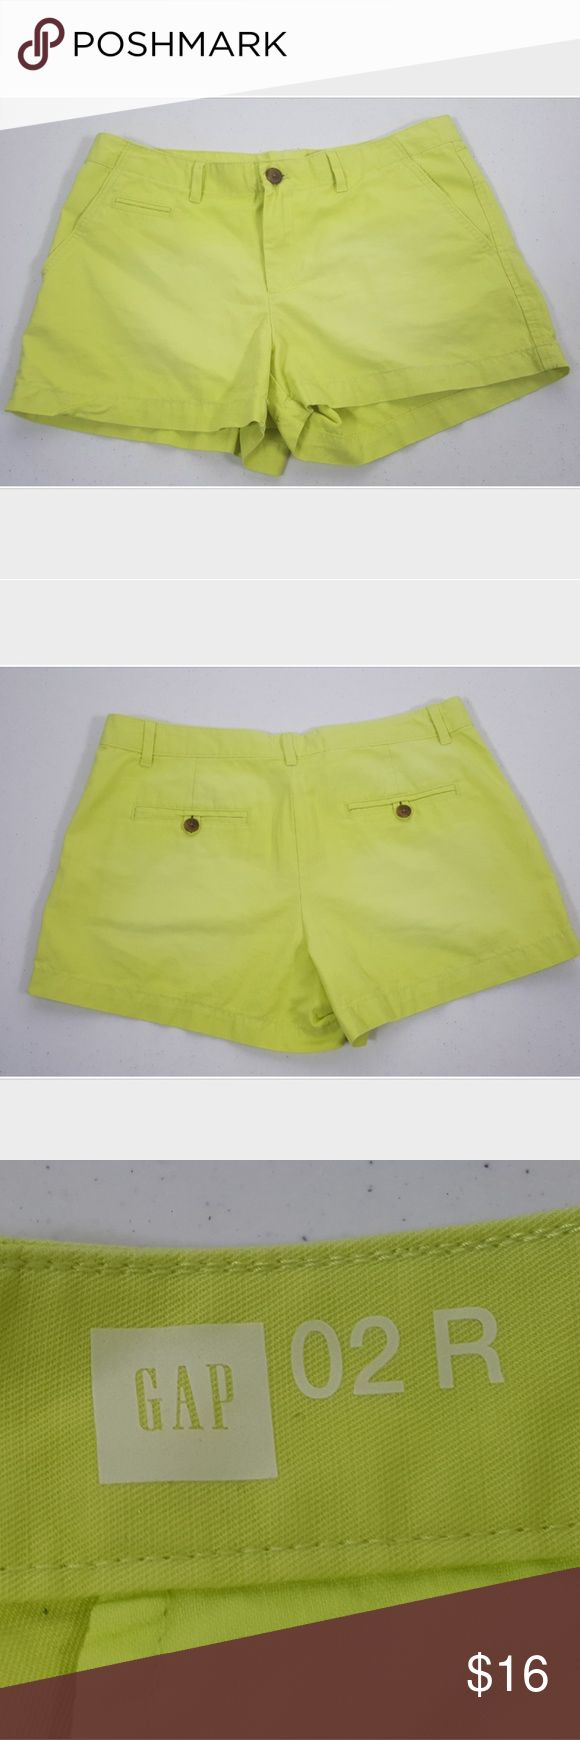 "Gap Lime Green Faded Look Shorts Women's Size 26 (2) Gap Lime Green Shorts. The shorts are in great preowned condition. No stains or tears. Shorts have a ""faded"" look on the front and rear. Gap Shorts"